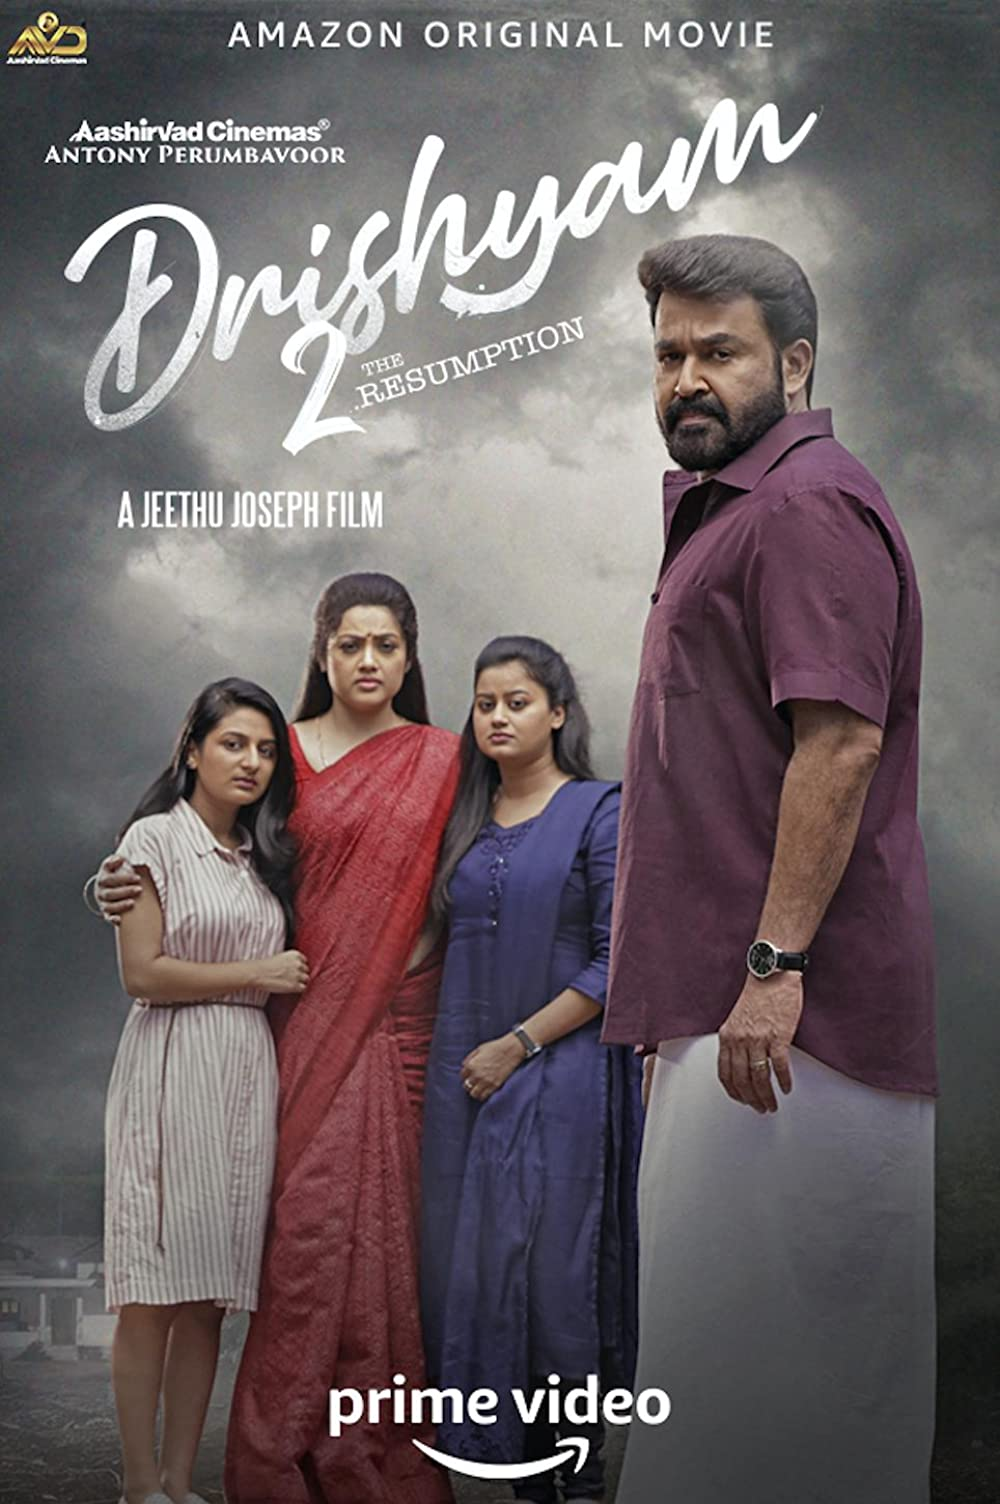 Drishyam 2 (2021) Malayalam Amazon Original Movie 720p HDRip 400MB ESub x264 AAC